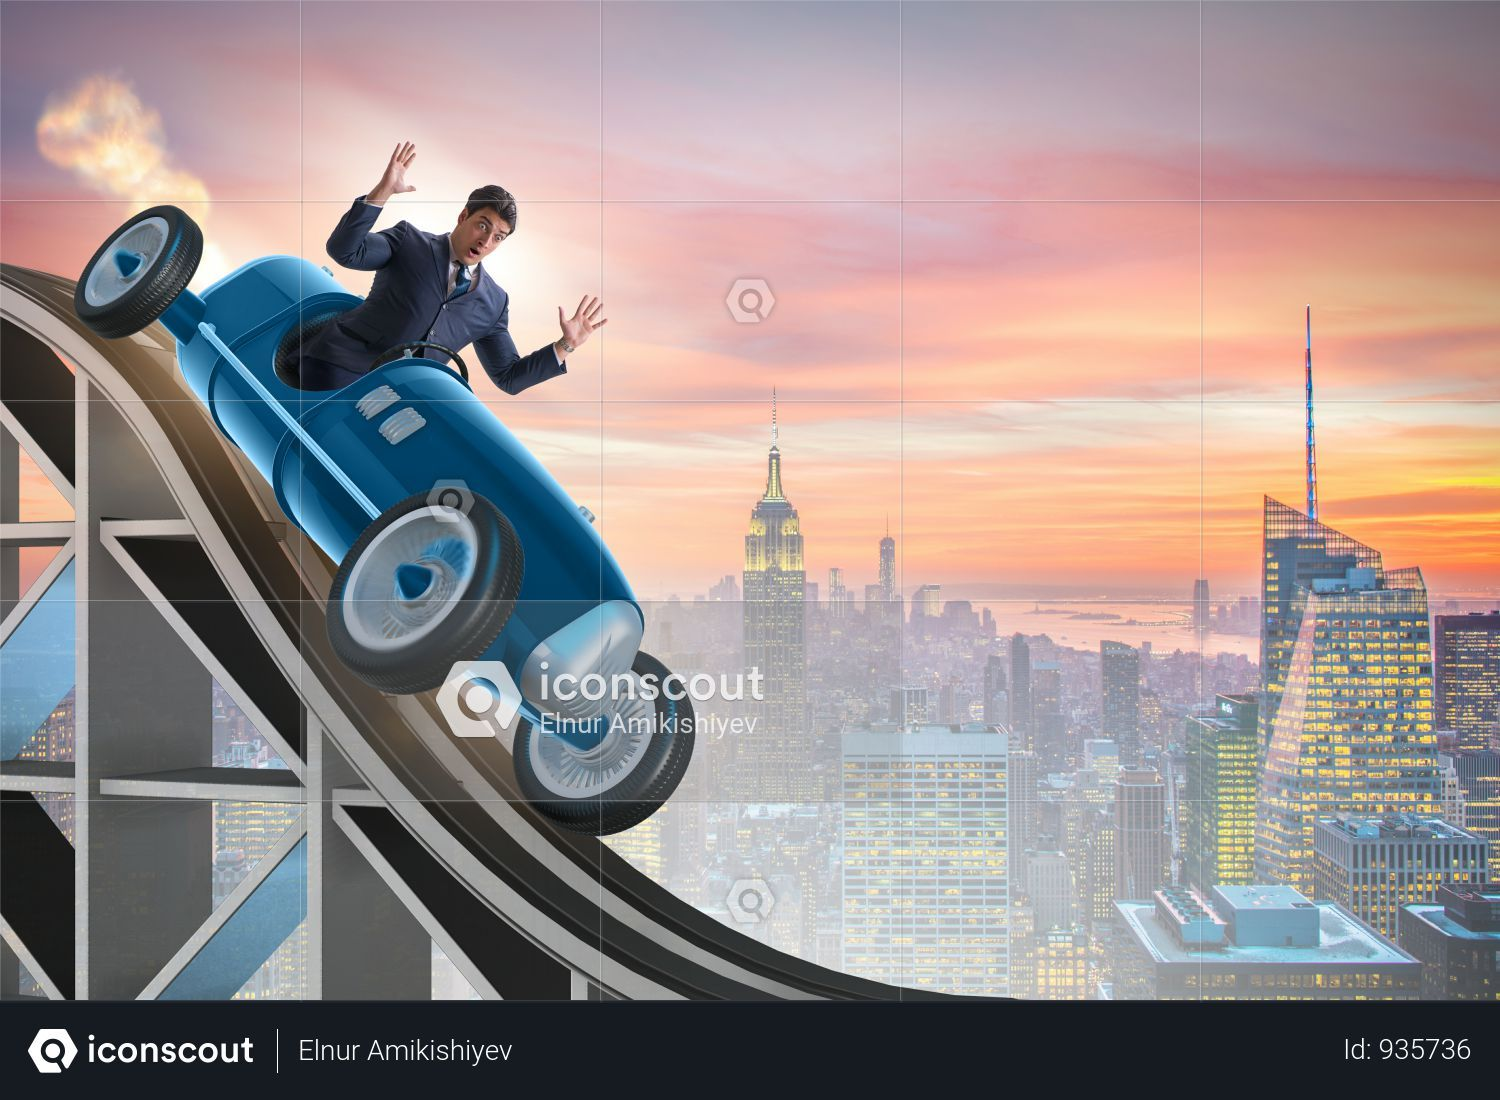 Premium Businessman Driving Sports Car On Roller Coaster Photo Download In Png Jpg Format Sports Car Roller Coaster Photo